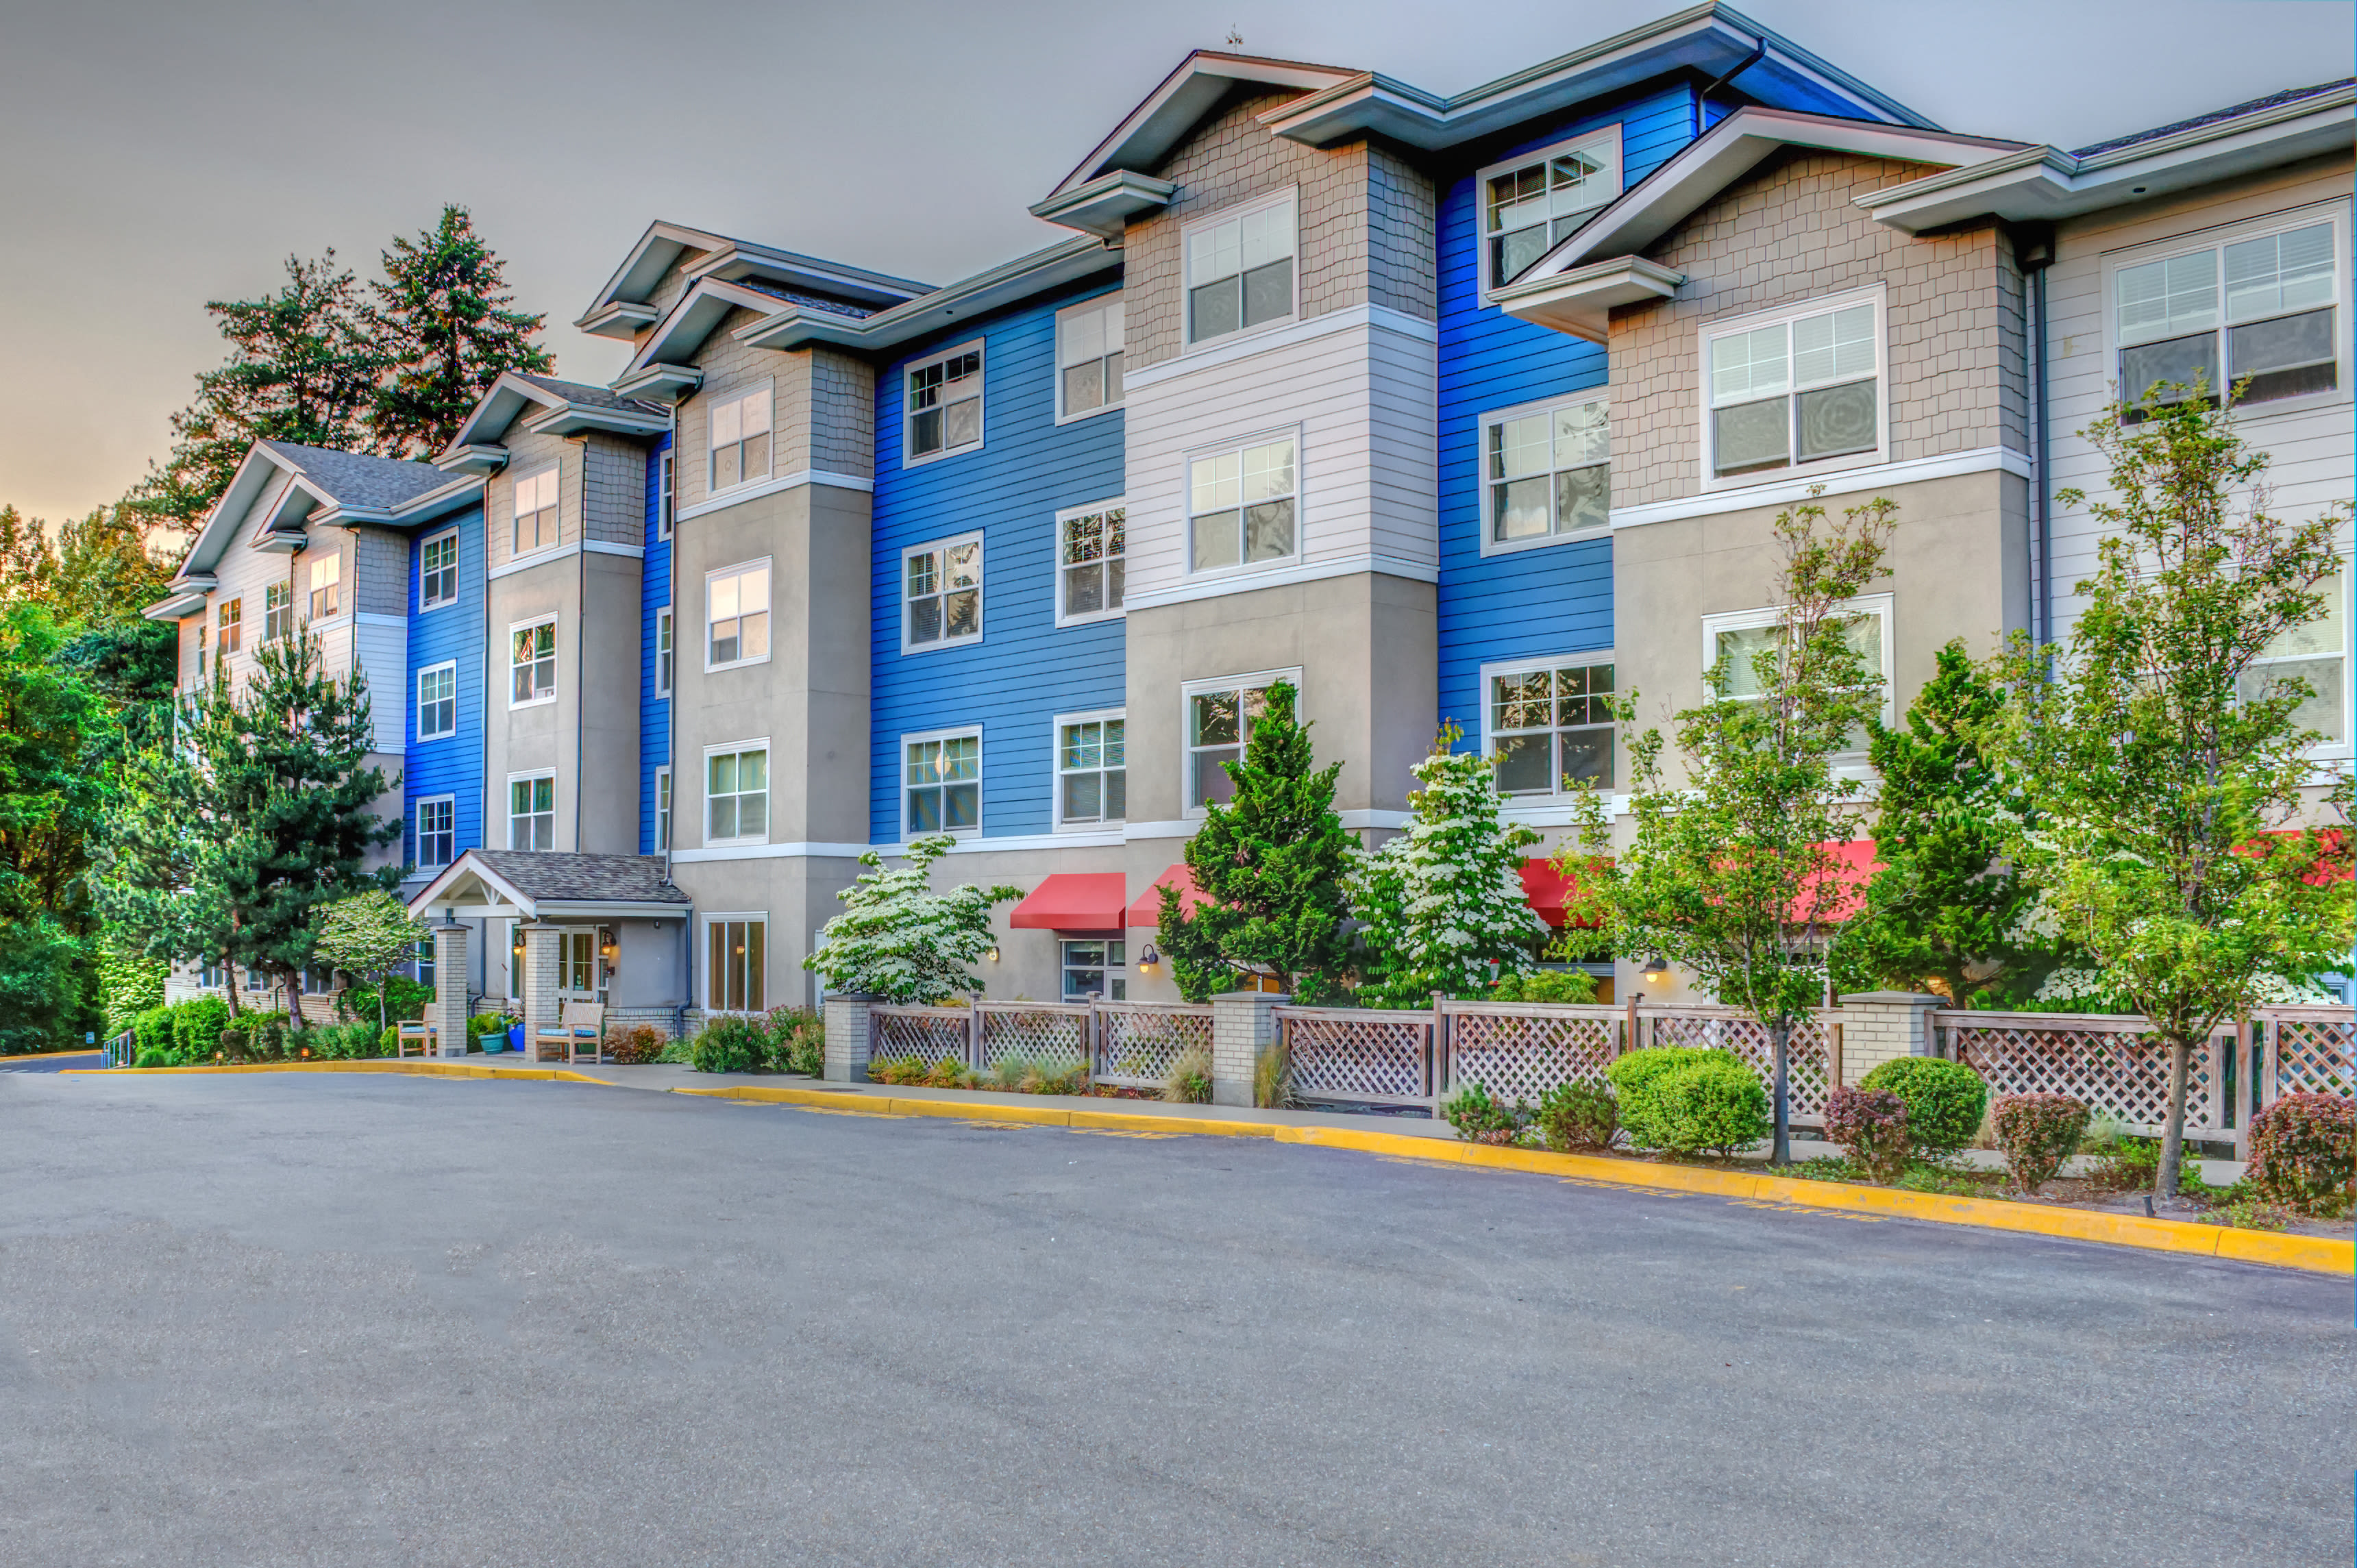 View the photos of the senior living in Woodinville